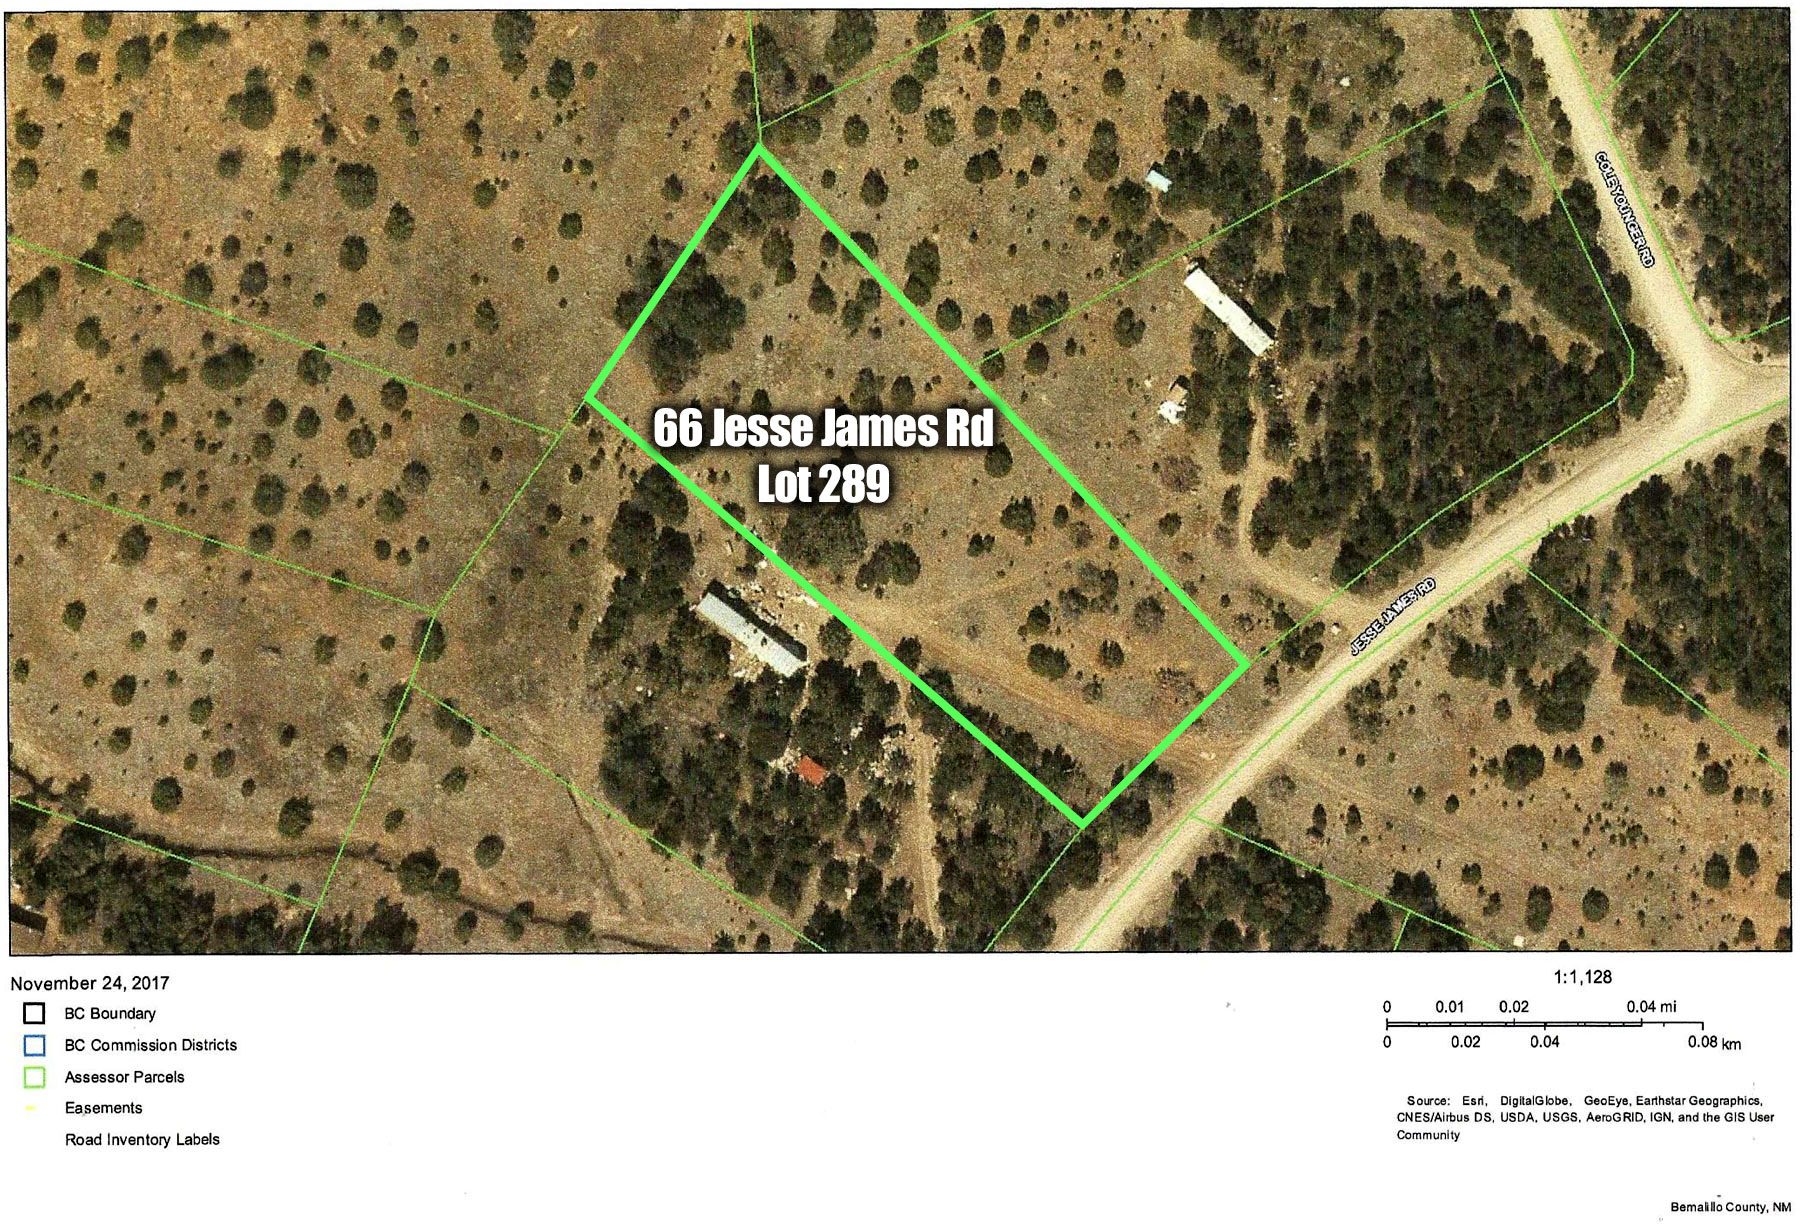 66 Jesse James Rd - Sundance Mountain Ranches